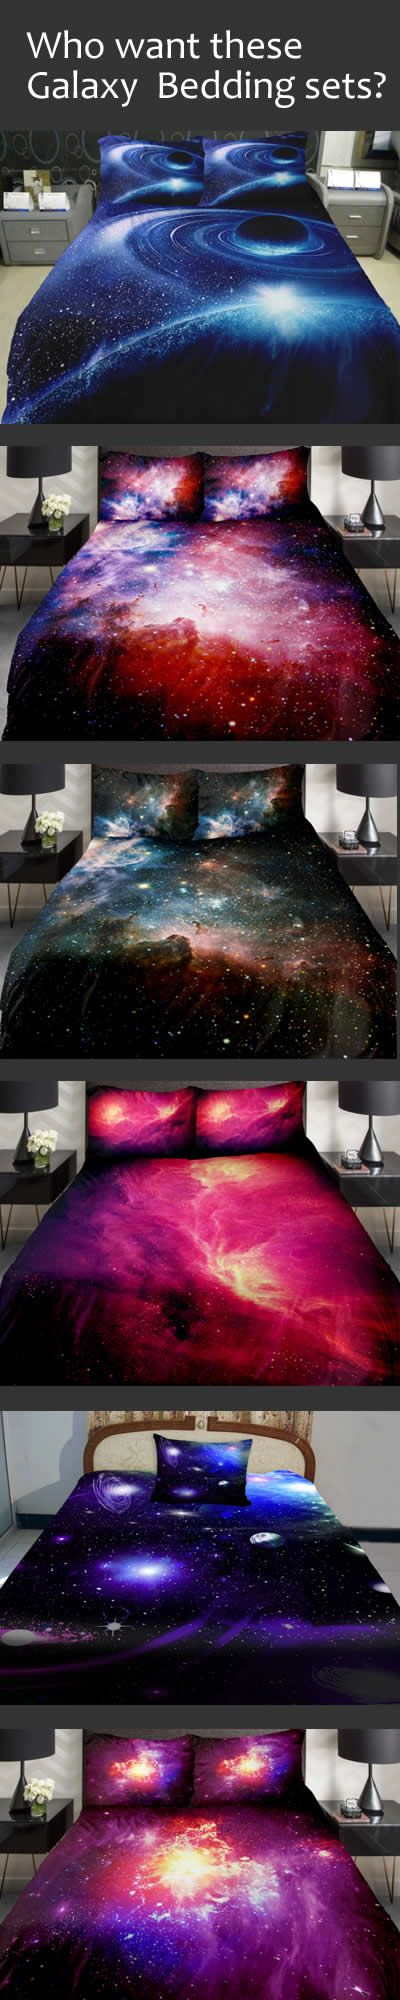 Inspire your dreams with these fascinating galaxy themed bedding/comforters. Discover more at Beddinginn.